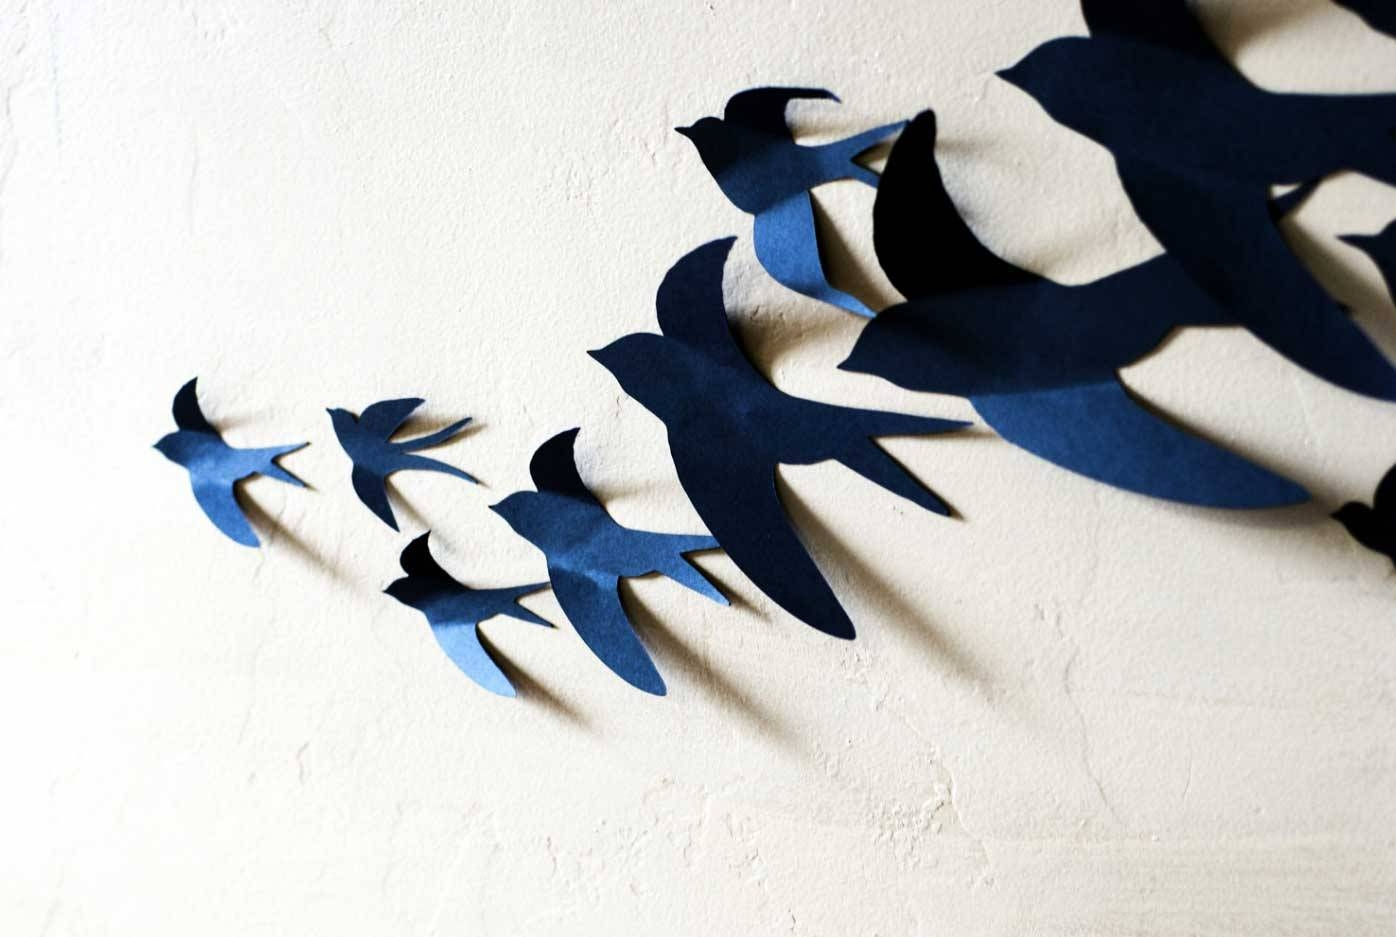 Articles With Three Flying Birds Wall Art Tag: Birds Wall Art Throughout Most Current White Birds 3D Wall Art (View 6 of 20)